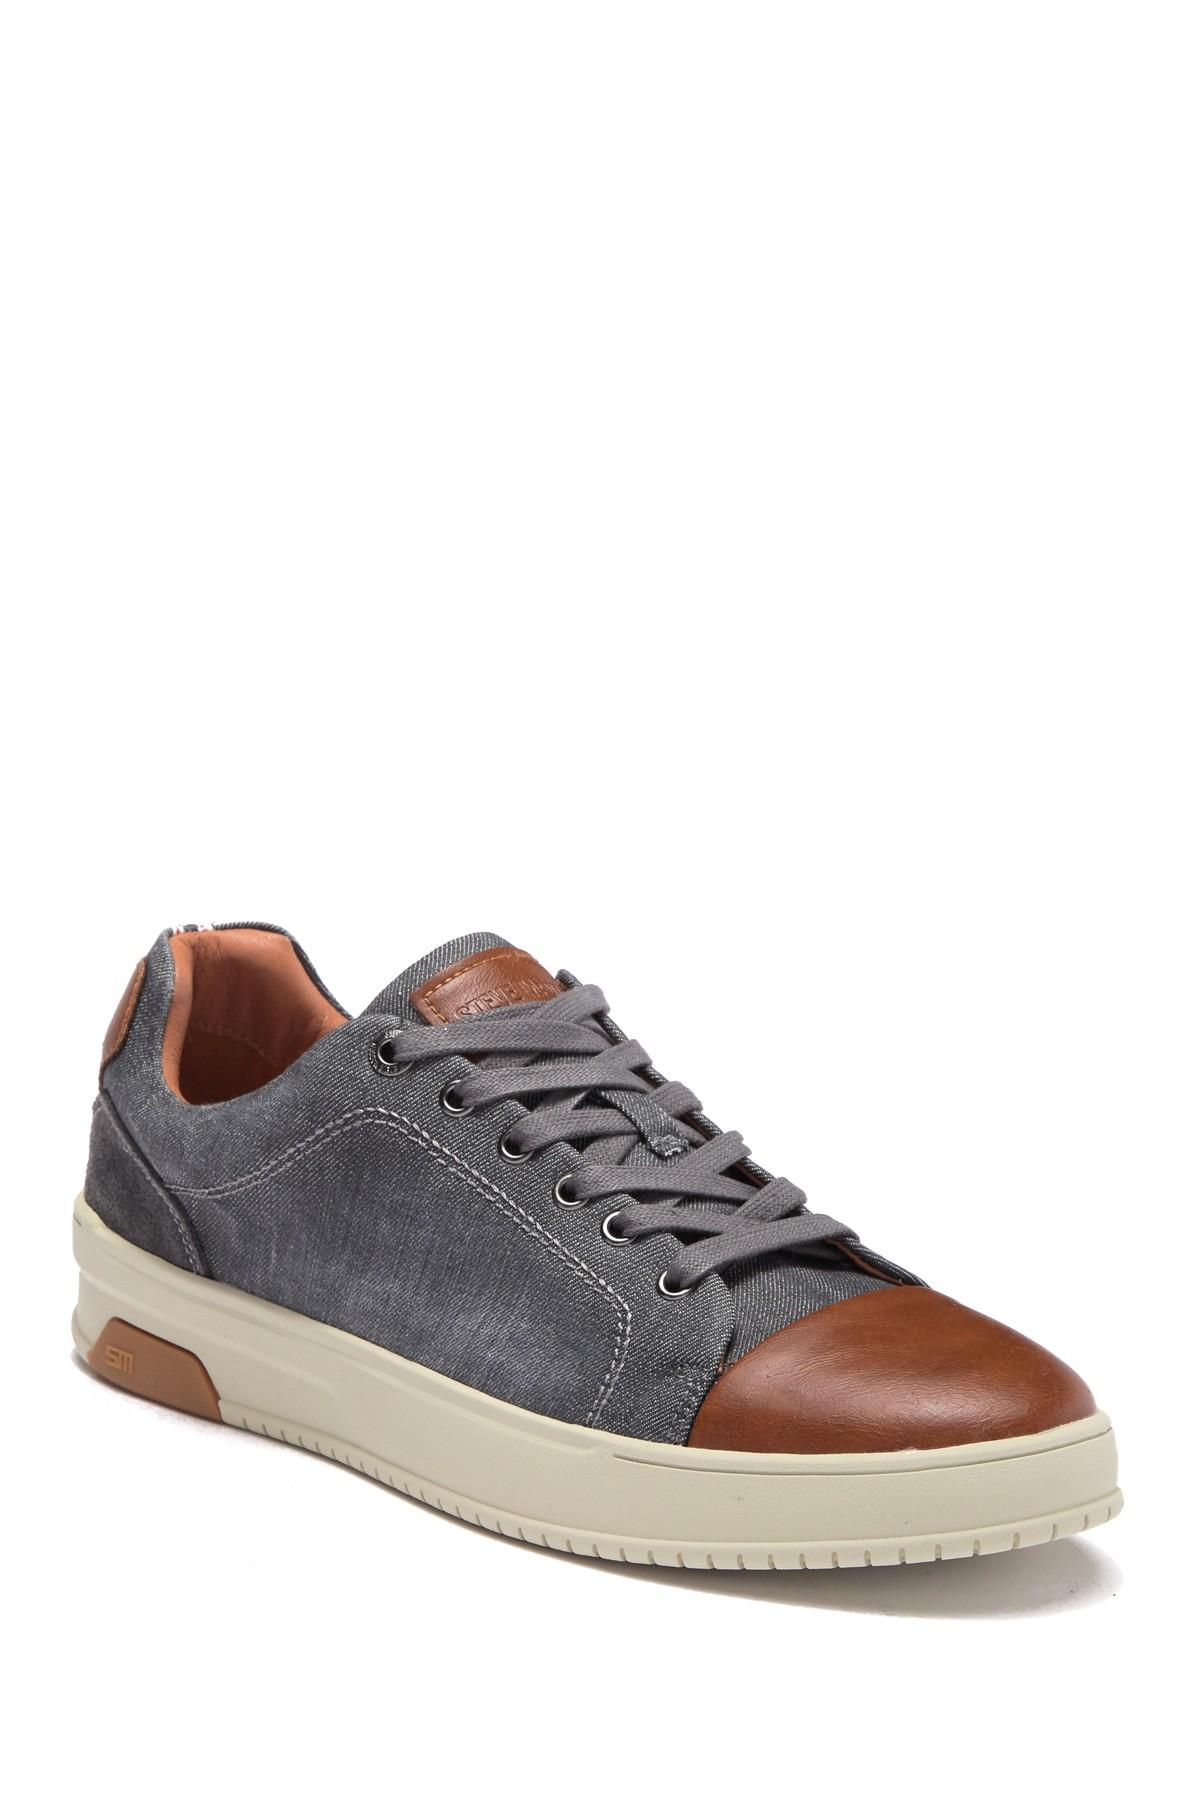 Rattan Rollo Lyst Steve Madden Rollo Sport Sneaker In Gray For Men